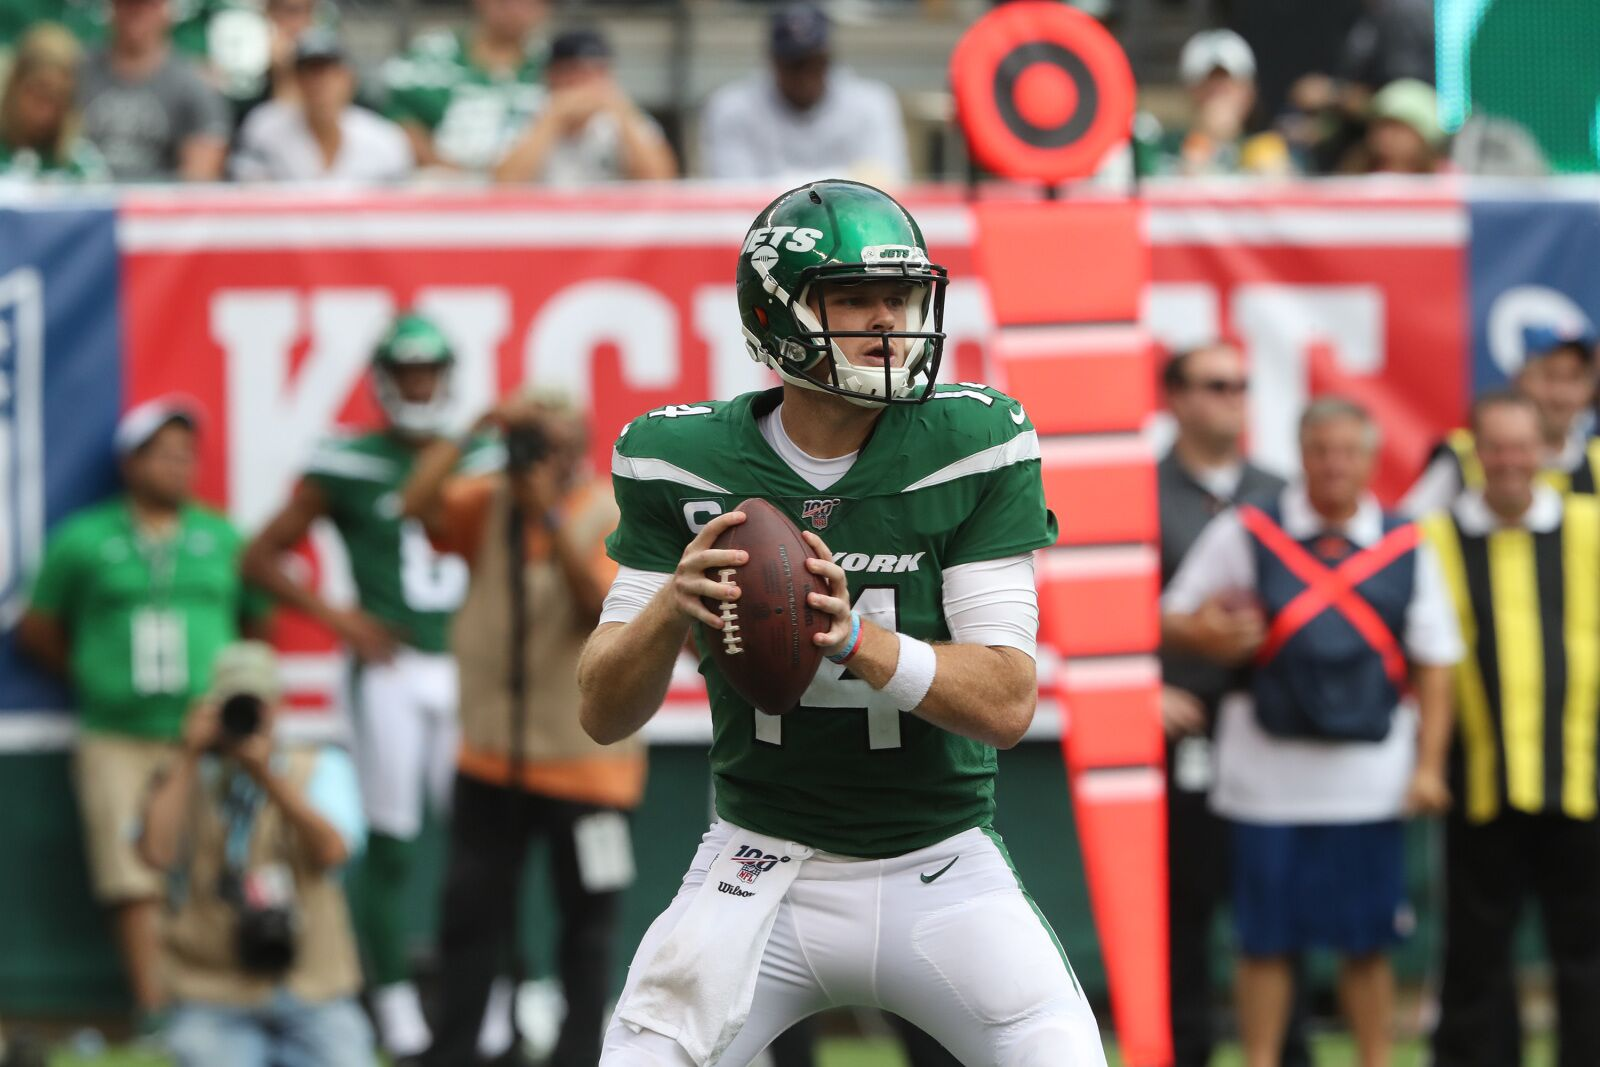 How Can Sam Darnold and Gang Green's Recent Misfortunes Impact Your Fantasy League?